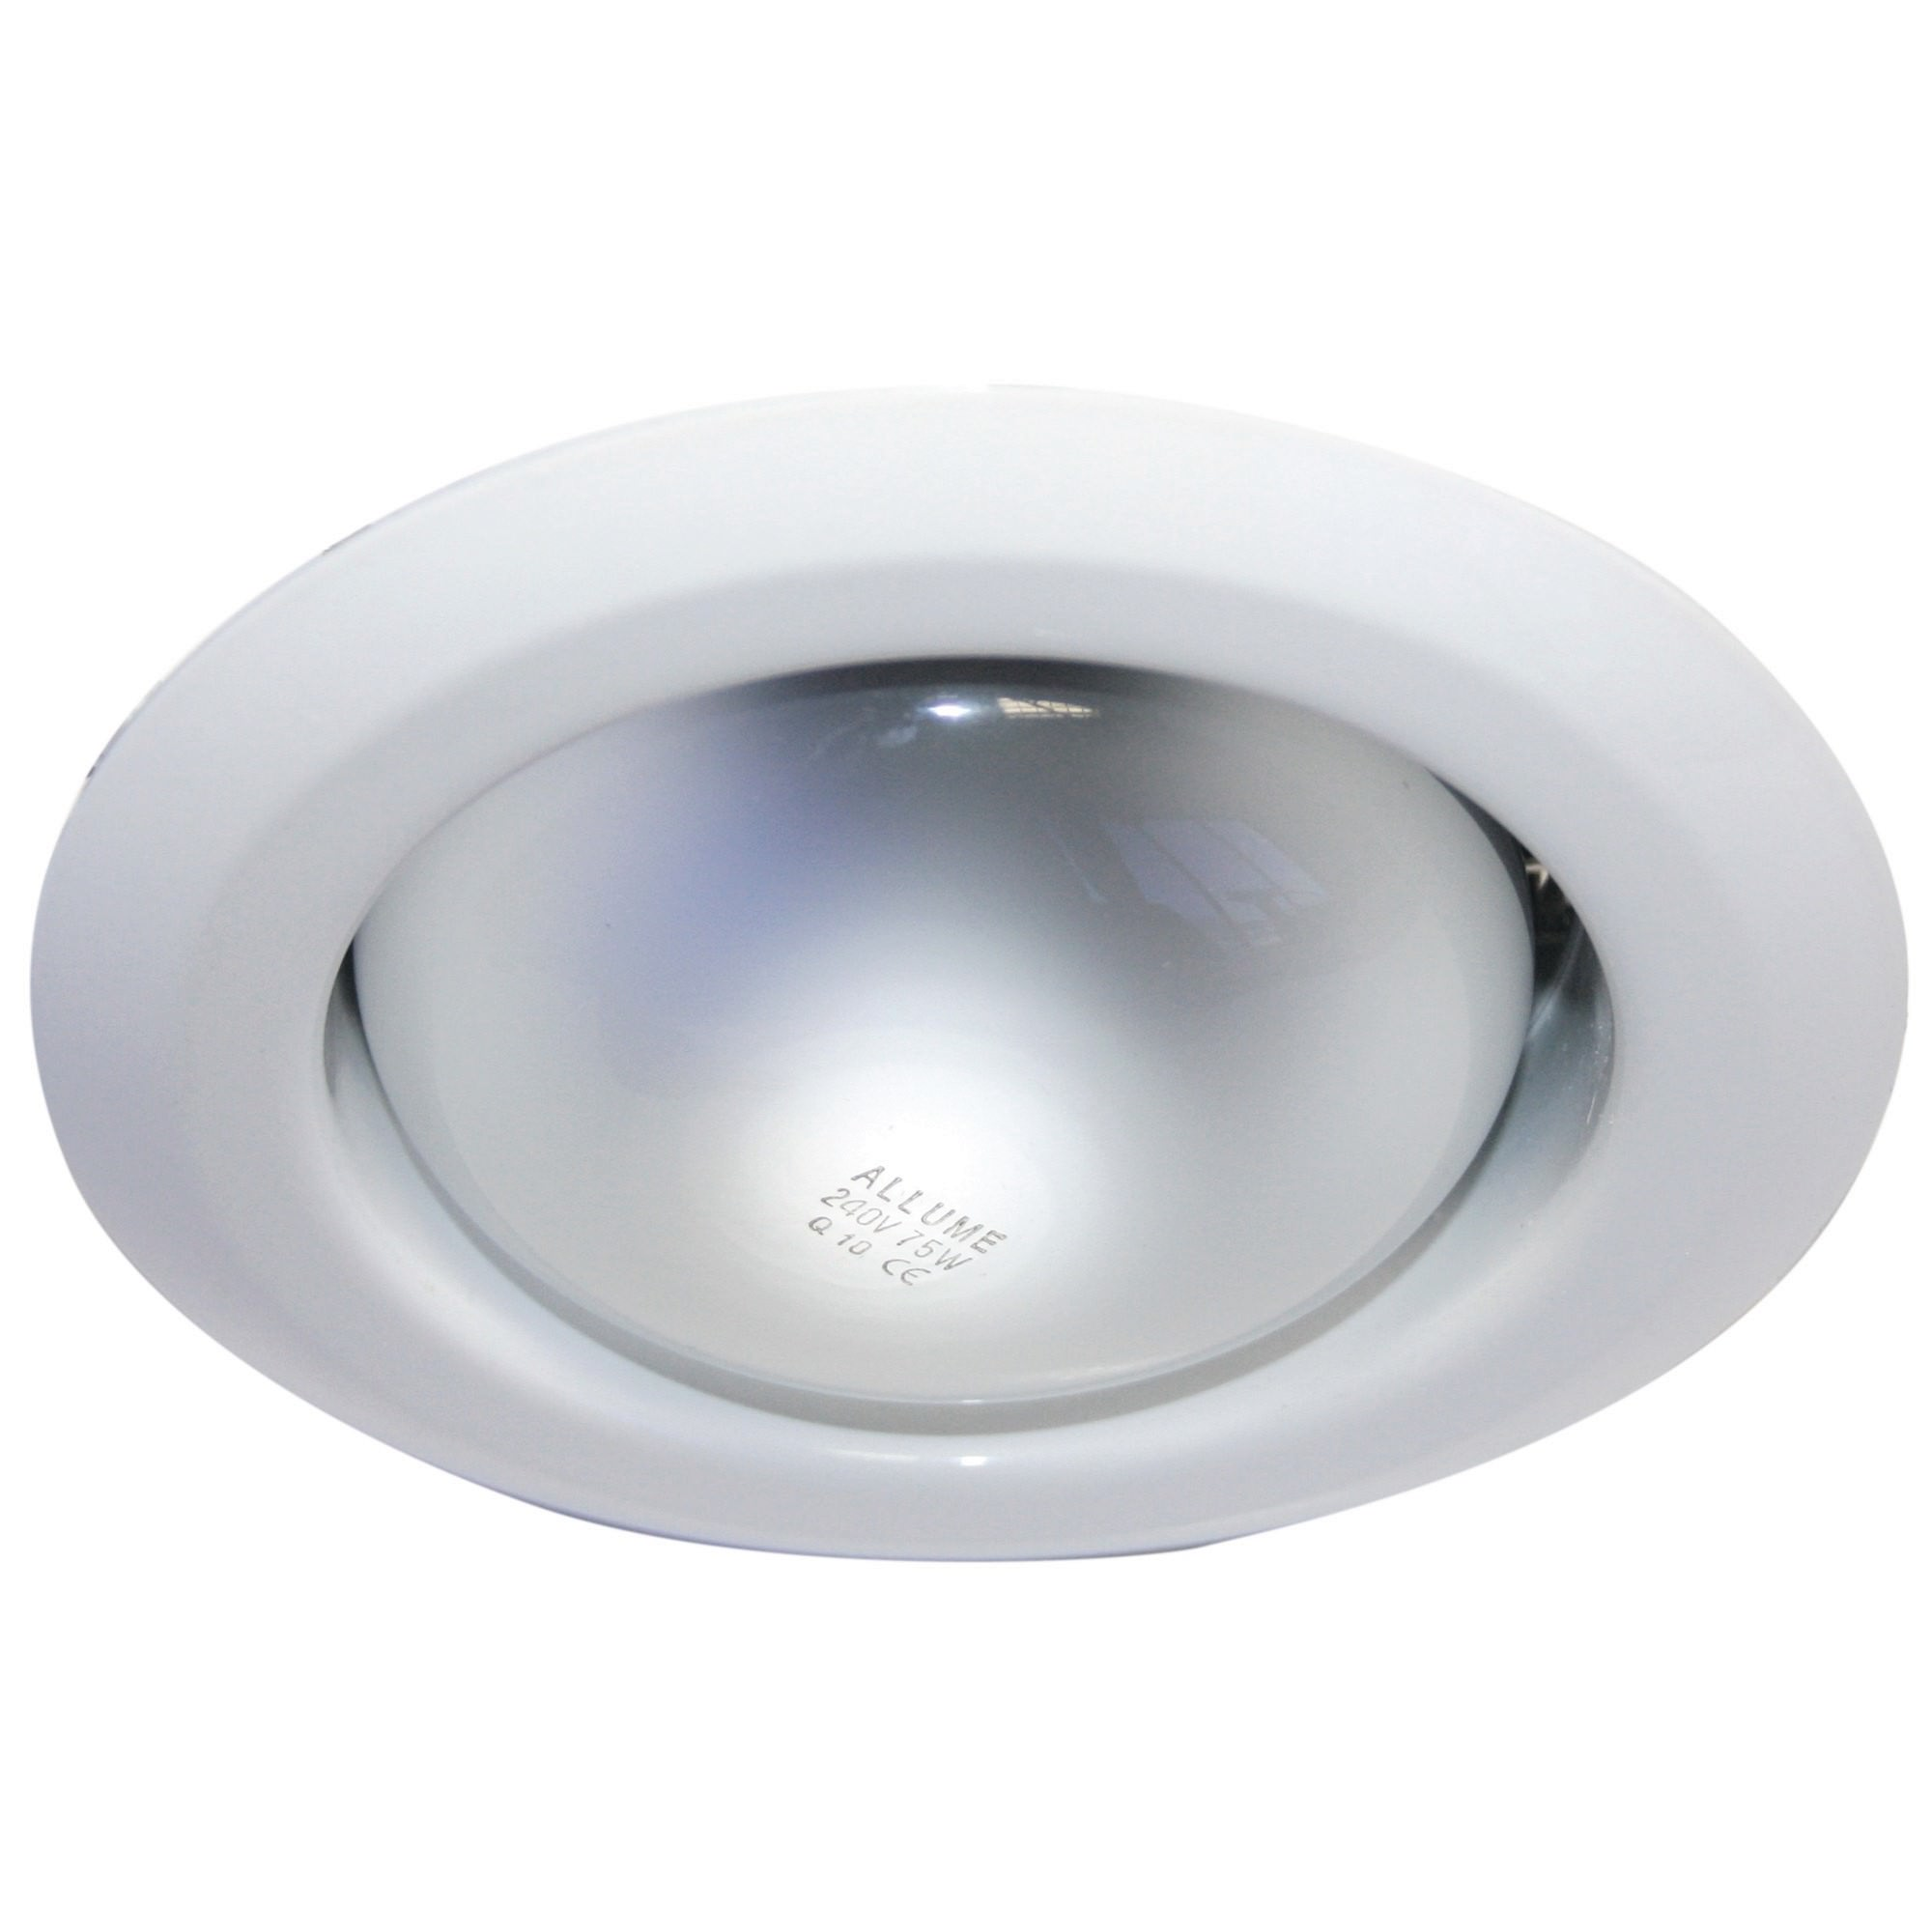 Project R80 Downlight, White (LF4325WH)